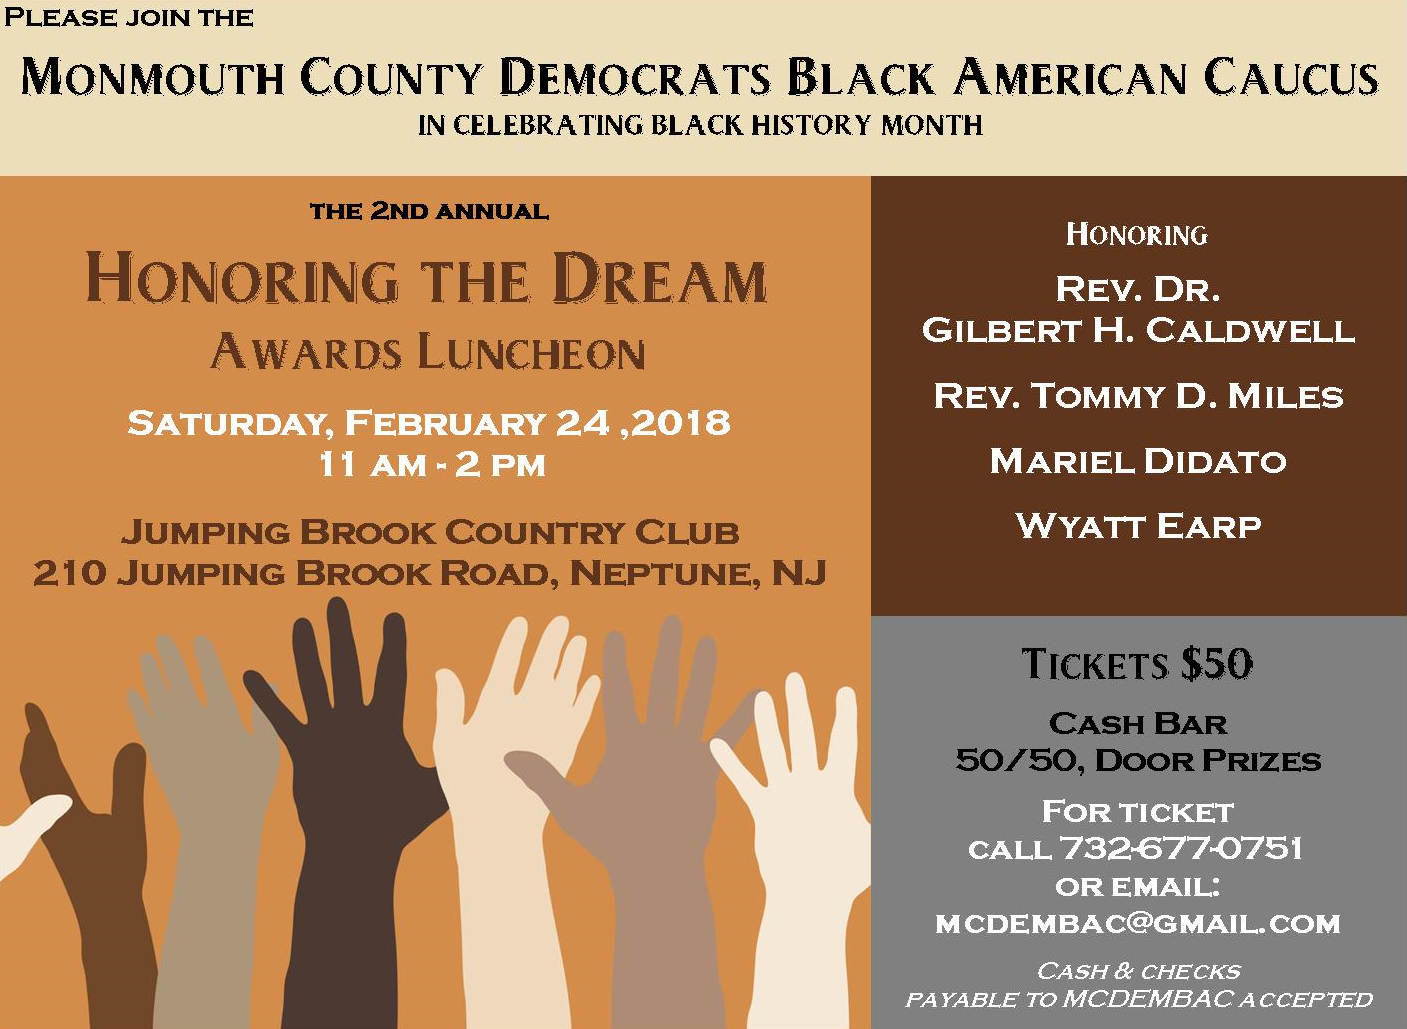 Honoring_the_Dream_Luncheon_2-24.png